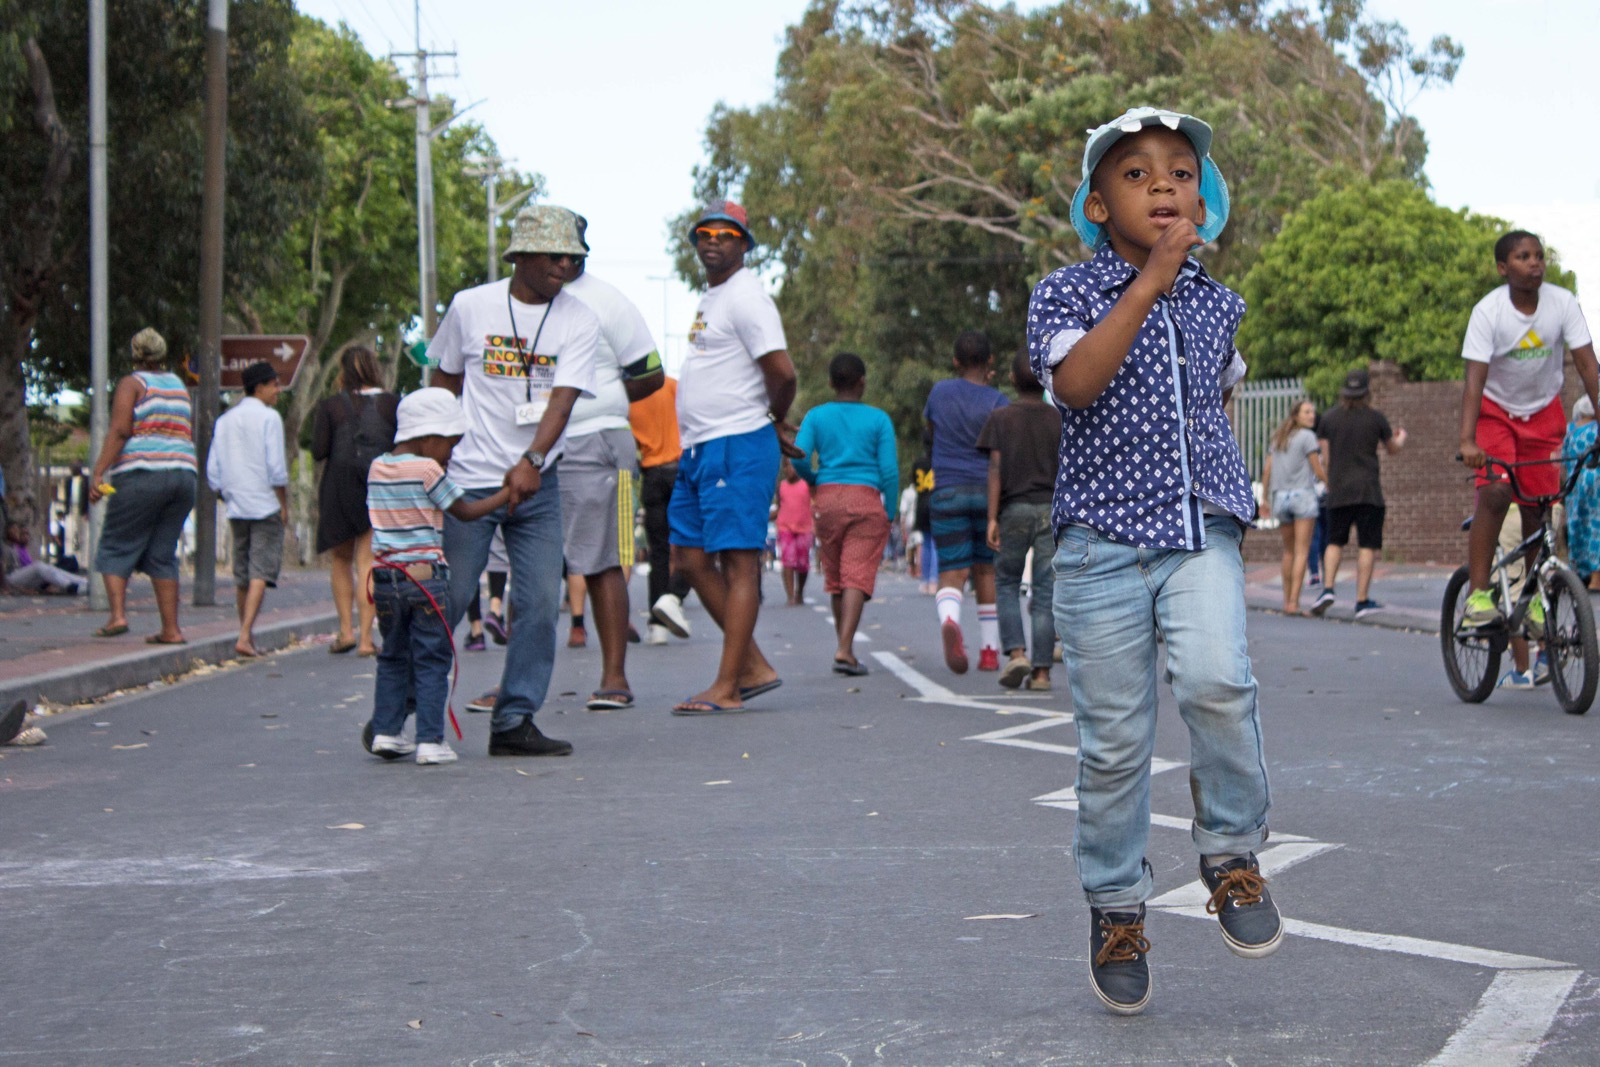 Kids play on the streets of Langa for Open Streets day.